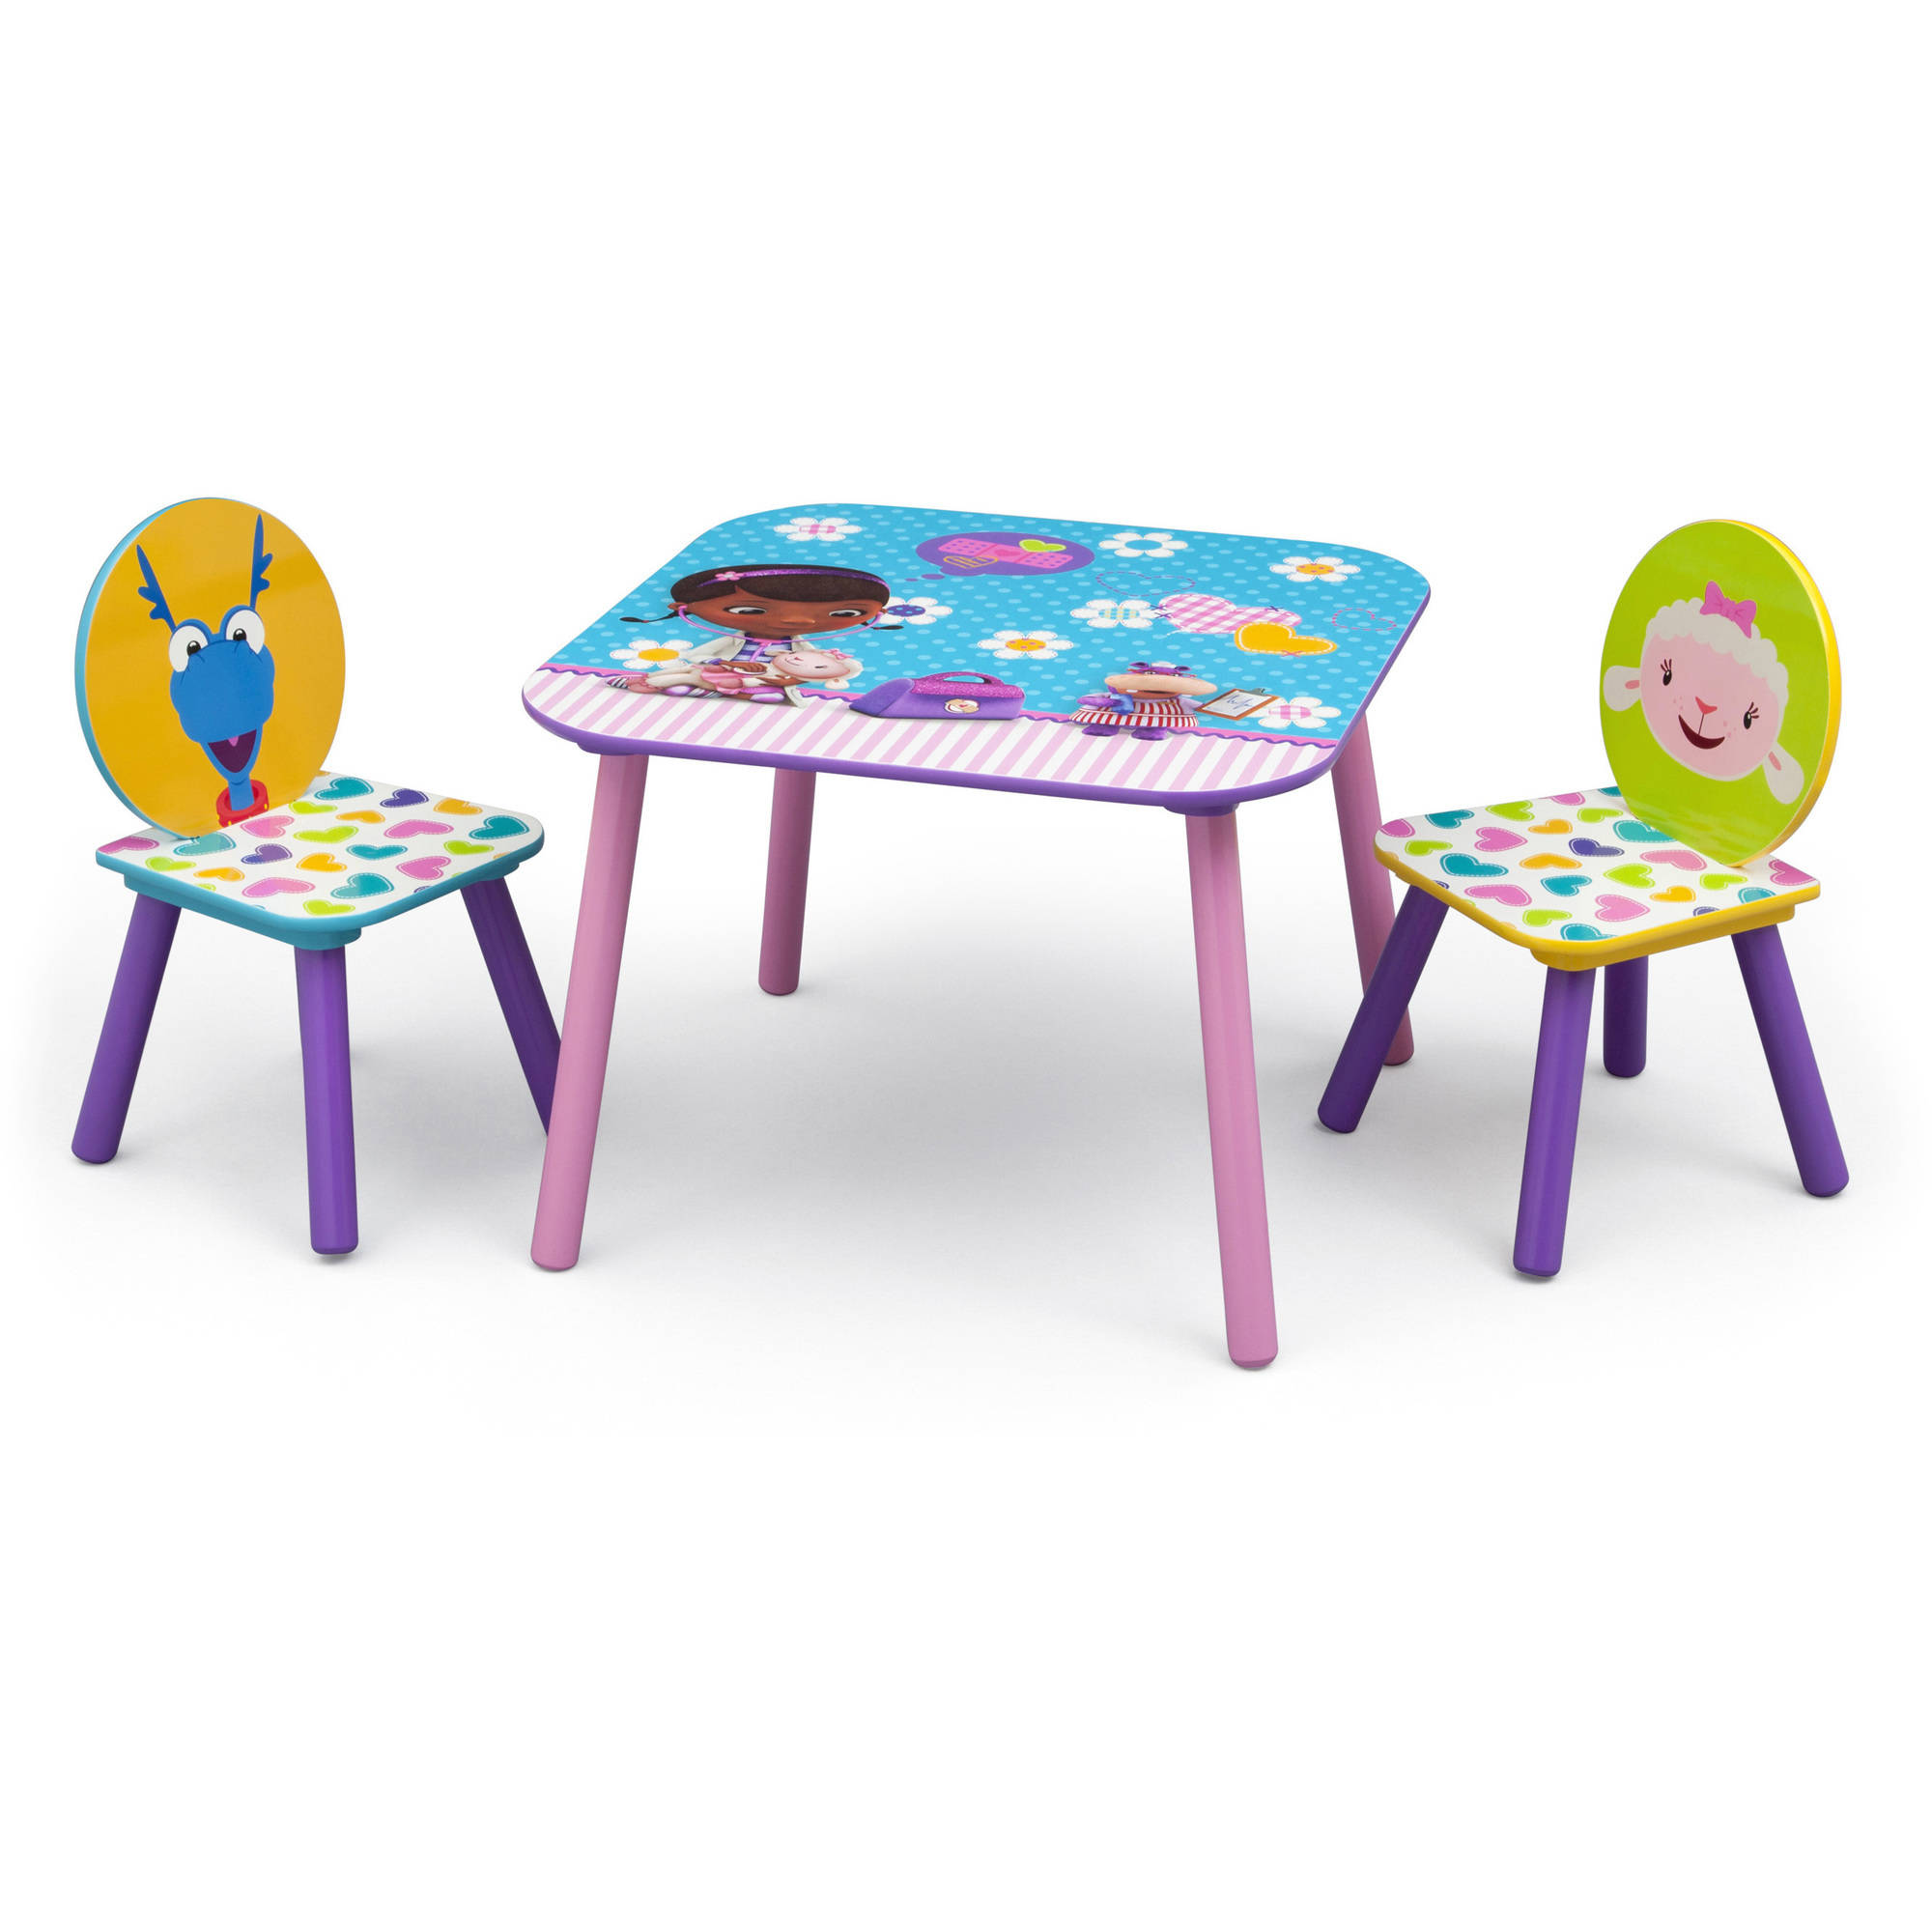 Disney Jr. Doc McStuffins Table and Chairs Set Multi-Color - Walmart.com  sc 1 st  Walmart & Disney Jr. Doc McStuffins Table and Chairs Set Multi-Color ...